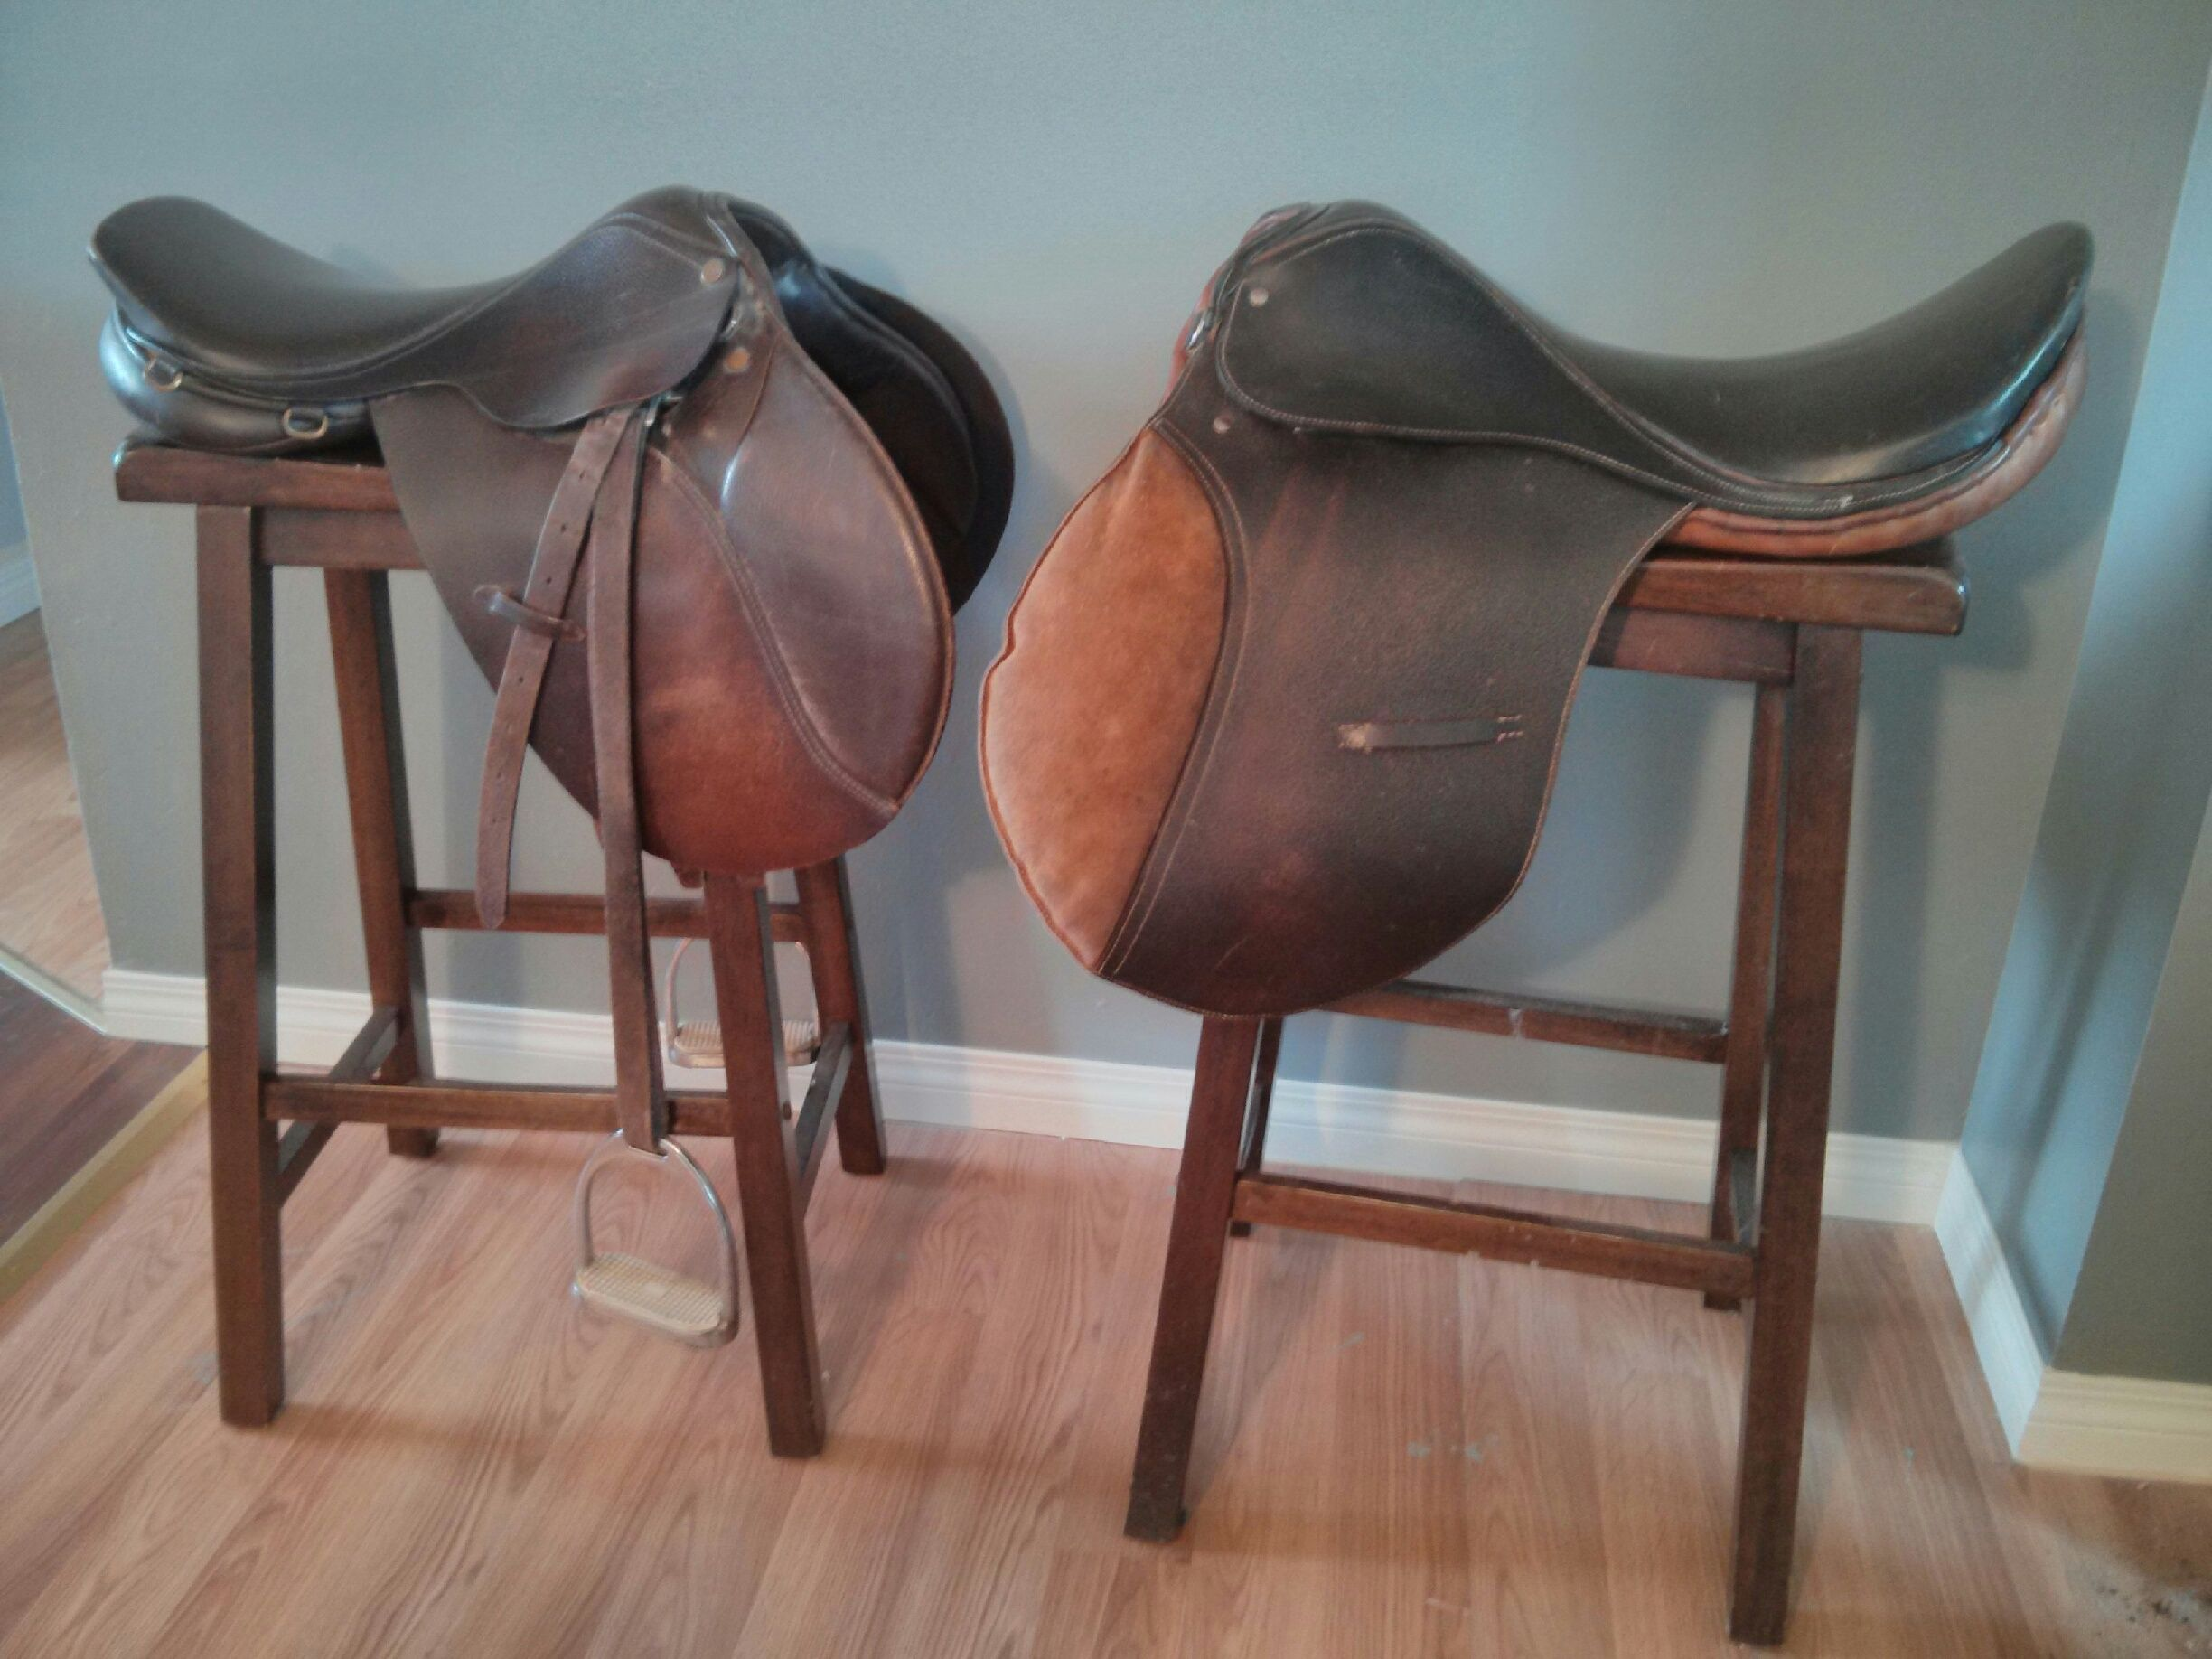 English Saddle Bar Stools Horses In Your Home In 2019